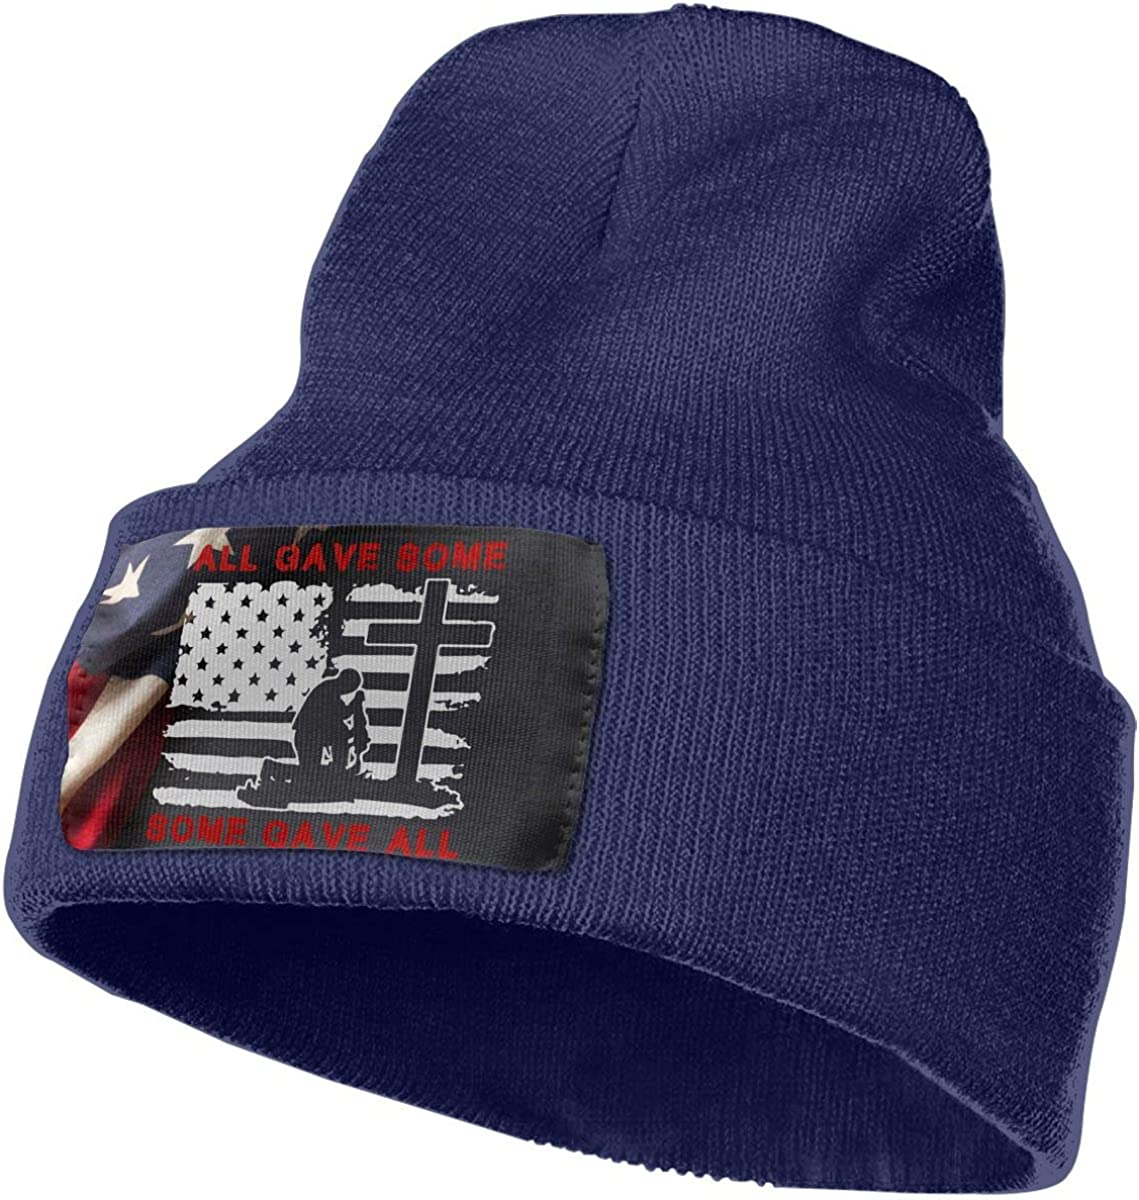 All Gave Some Some Gave All Veterans Beanie Cap Hat Men /& Women Knitting Hats Stretchy /& Soft Beanie